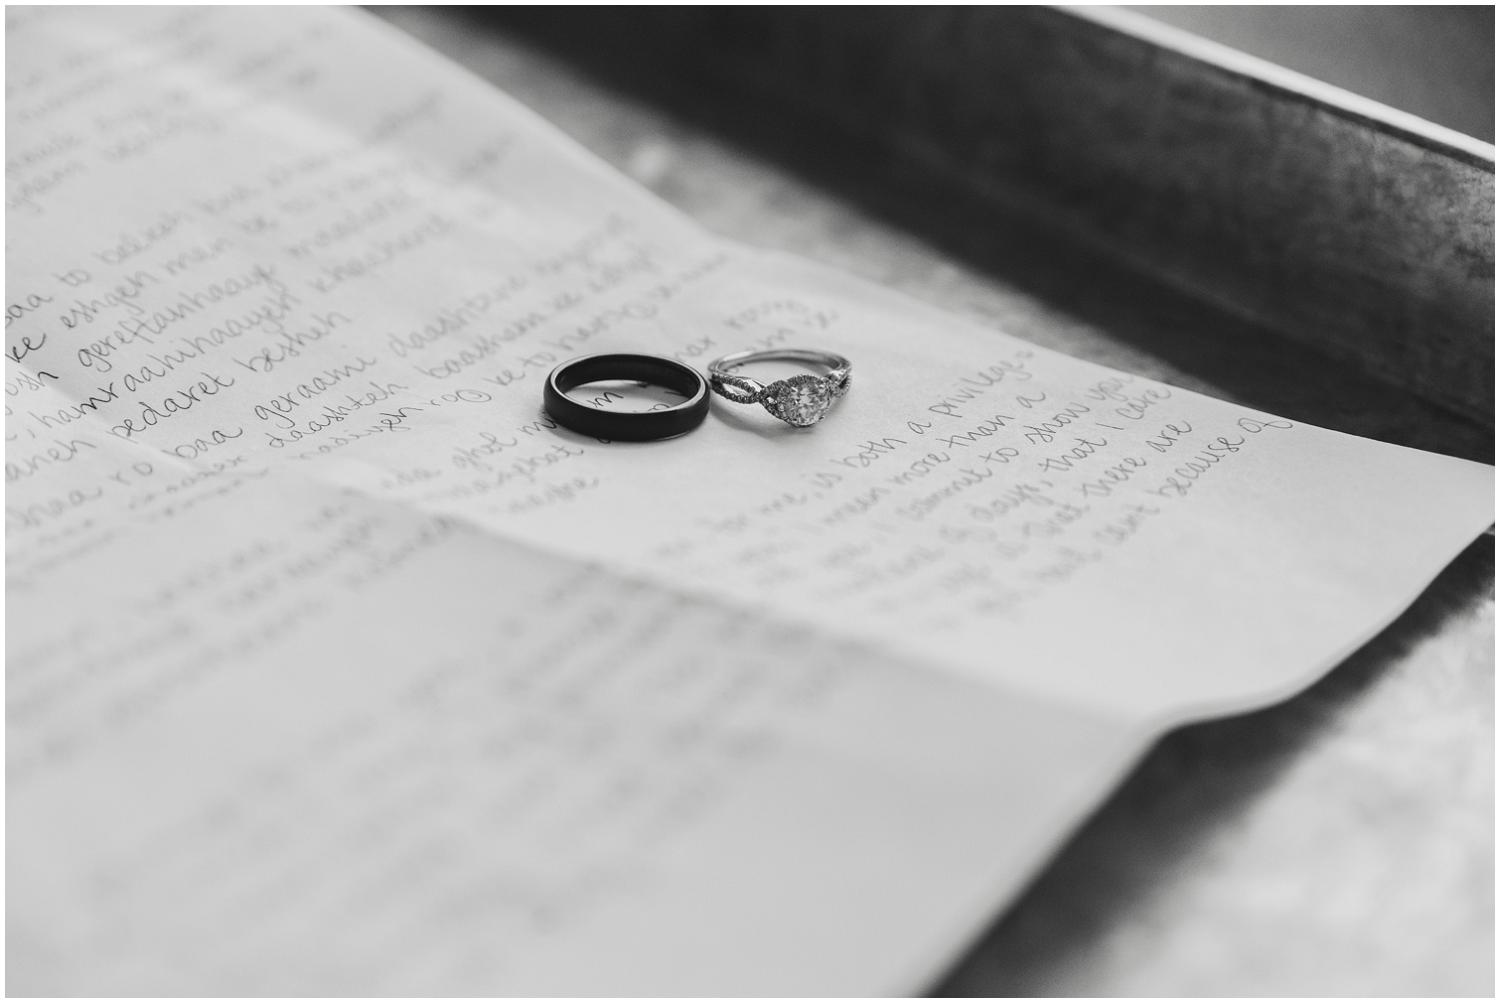 wedding rings with hand written vows in both english and persian